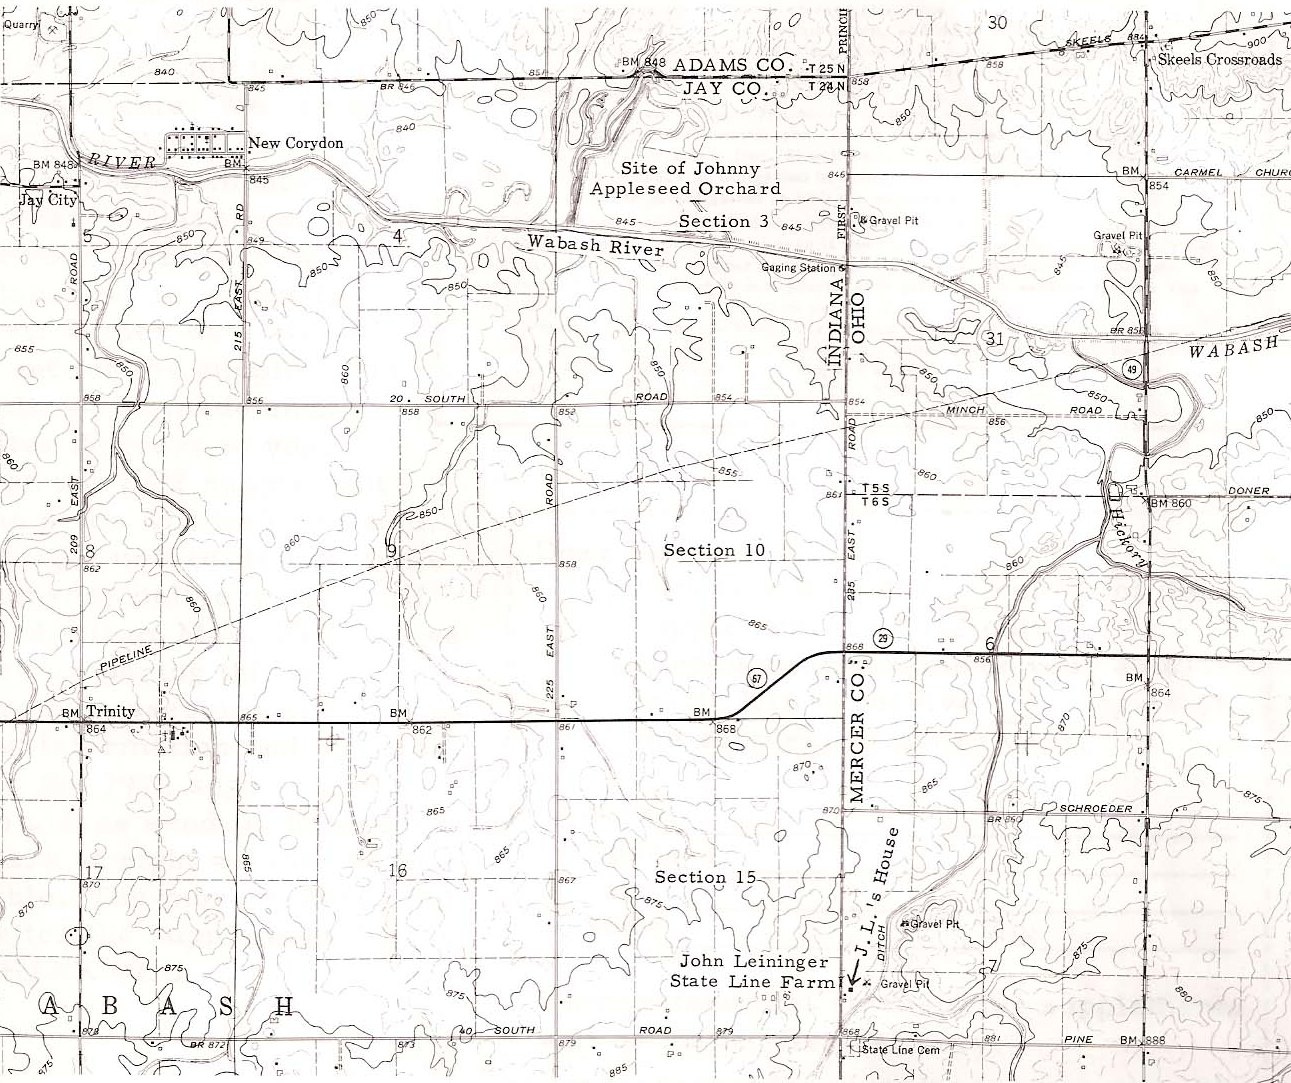 Map of Johnny Appleseed's farm (John Chapman) and John George Leininger's farm